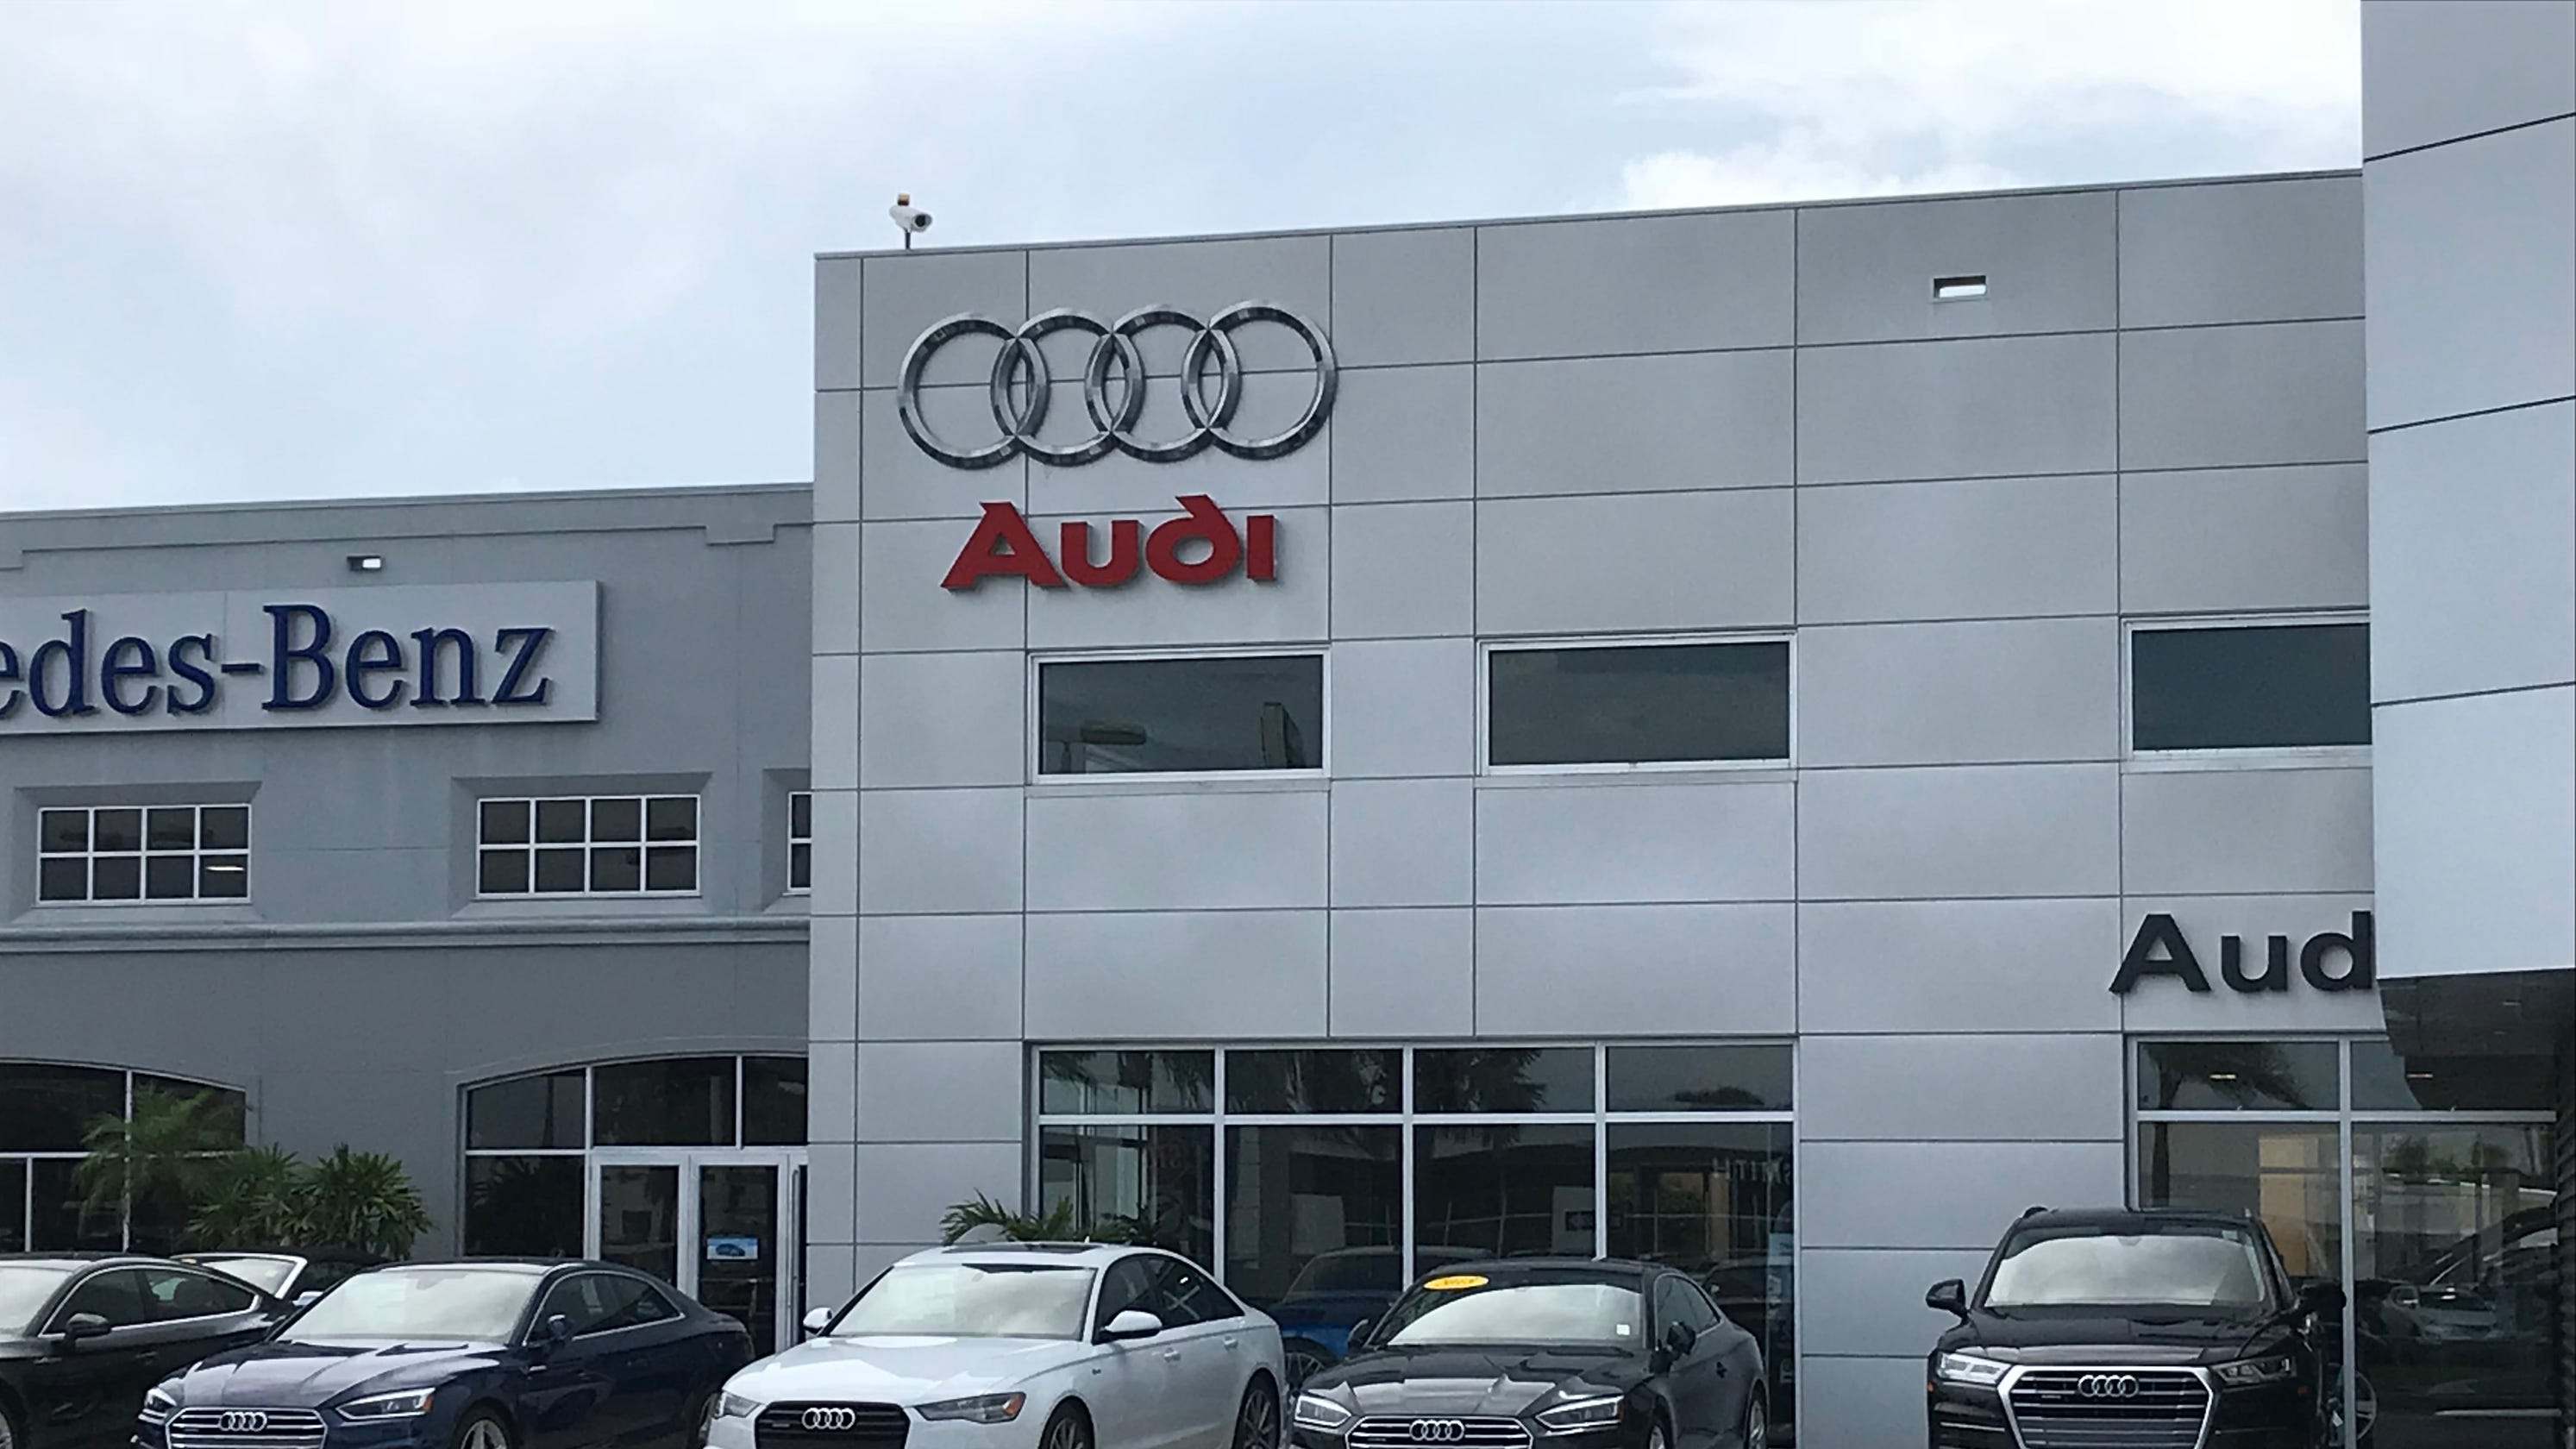 Melbourne Audi dealership will move to West Melbourne near I-10   audi car dealerships near me